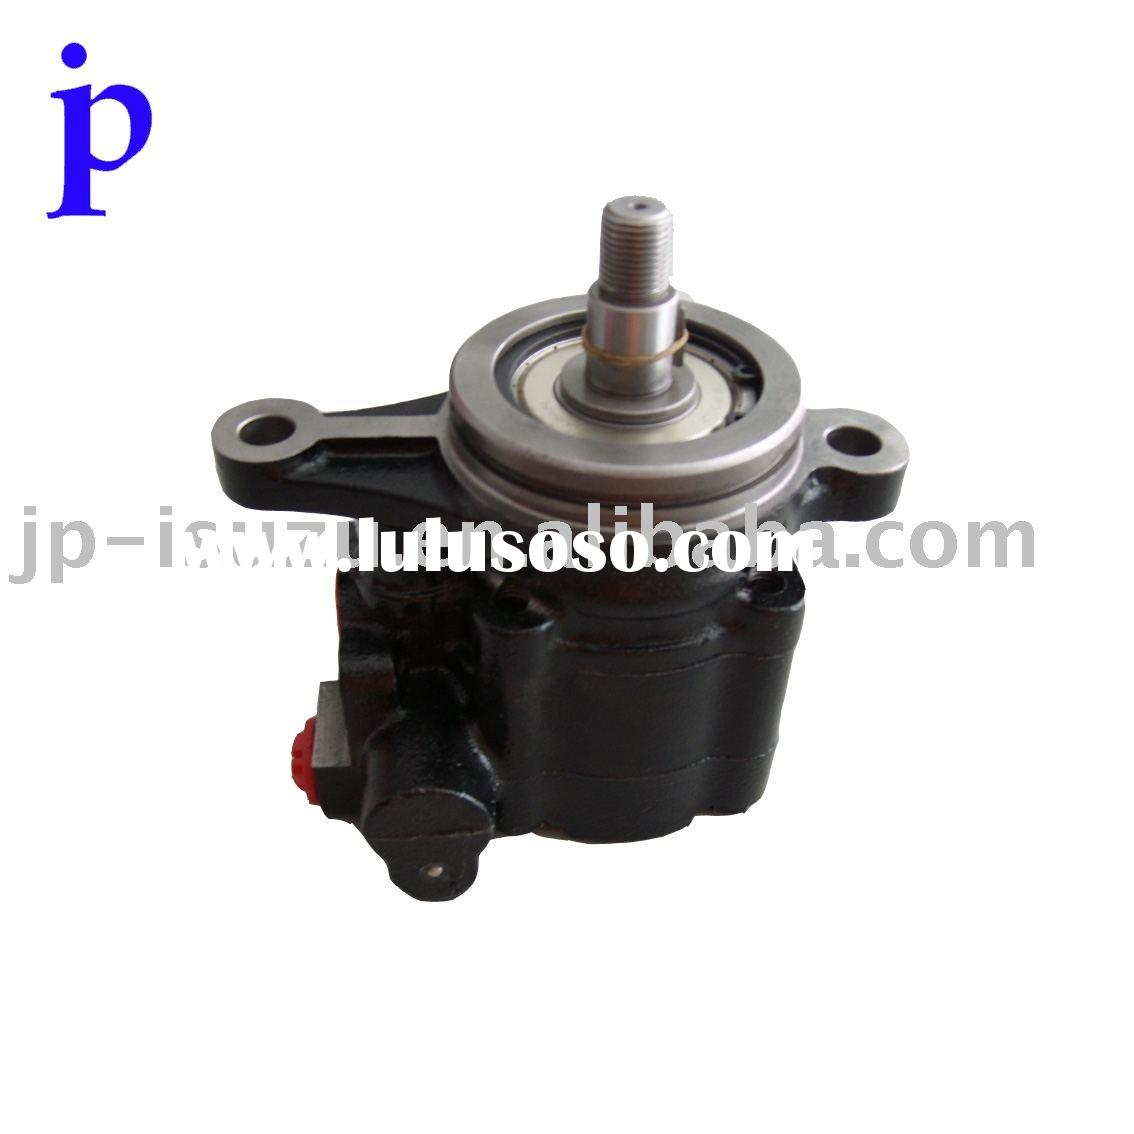 Isuzu Steering Hydraulic Oil Pump, Hydraulic Gear Pump, Part #.1-19500353-0